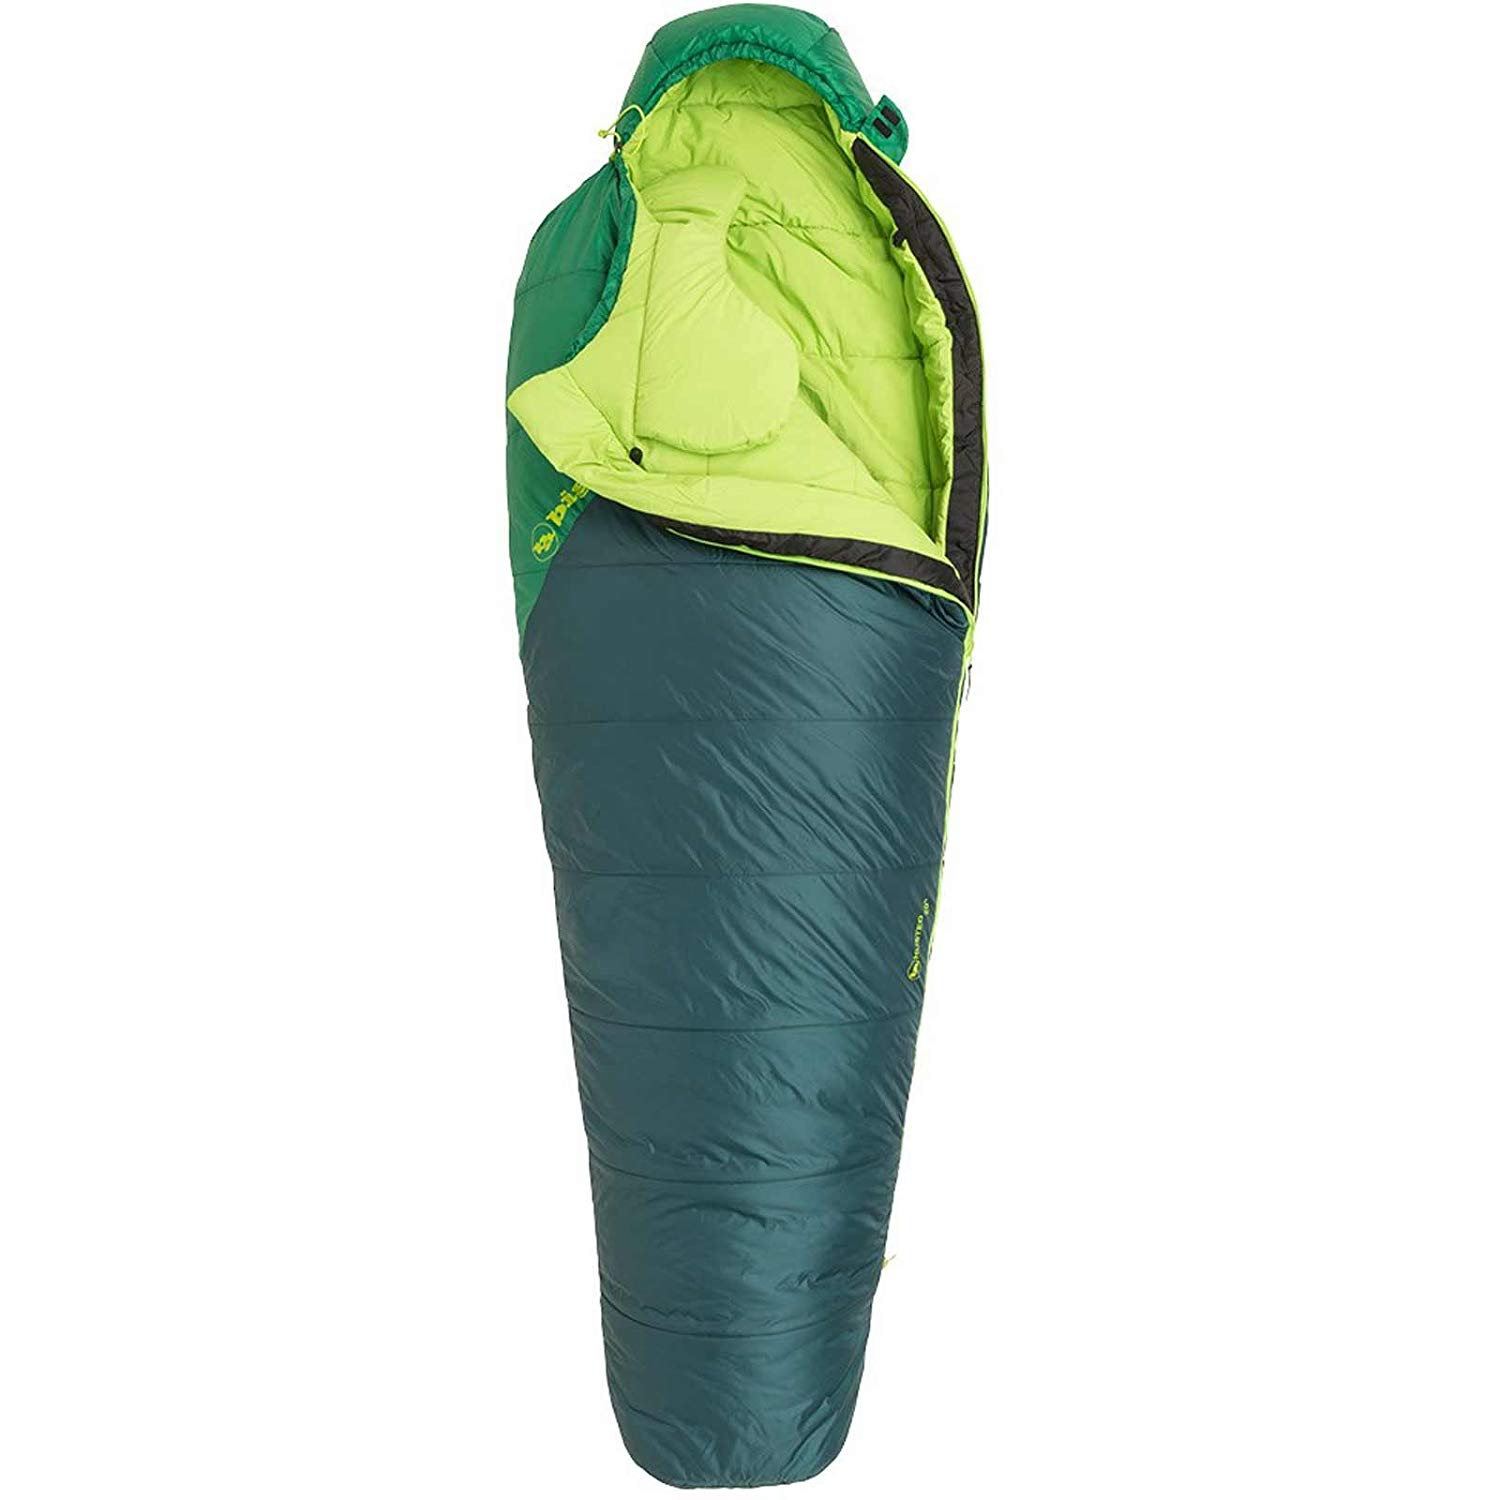 An image related to Big Agnes Husted Men's 20 Degree Single Lightweight Polyester 6 Ft. 6 in. Mummy Sleeping Bag